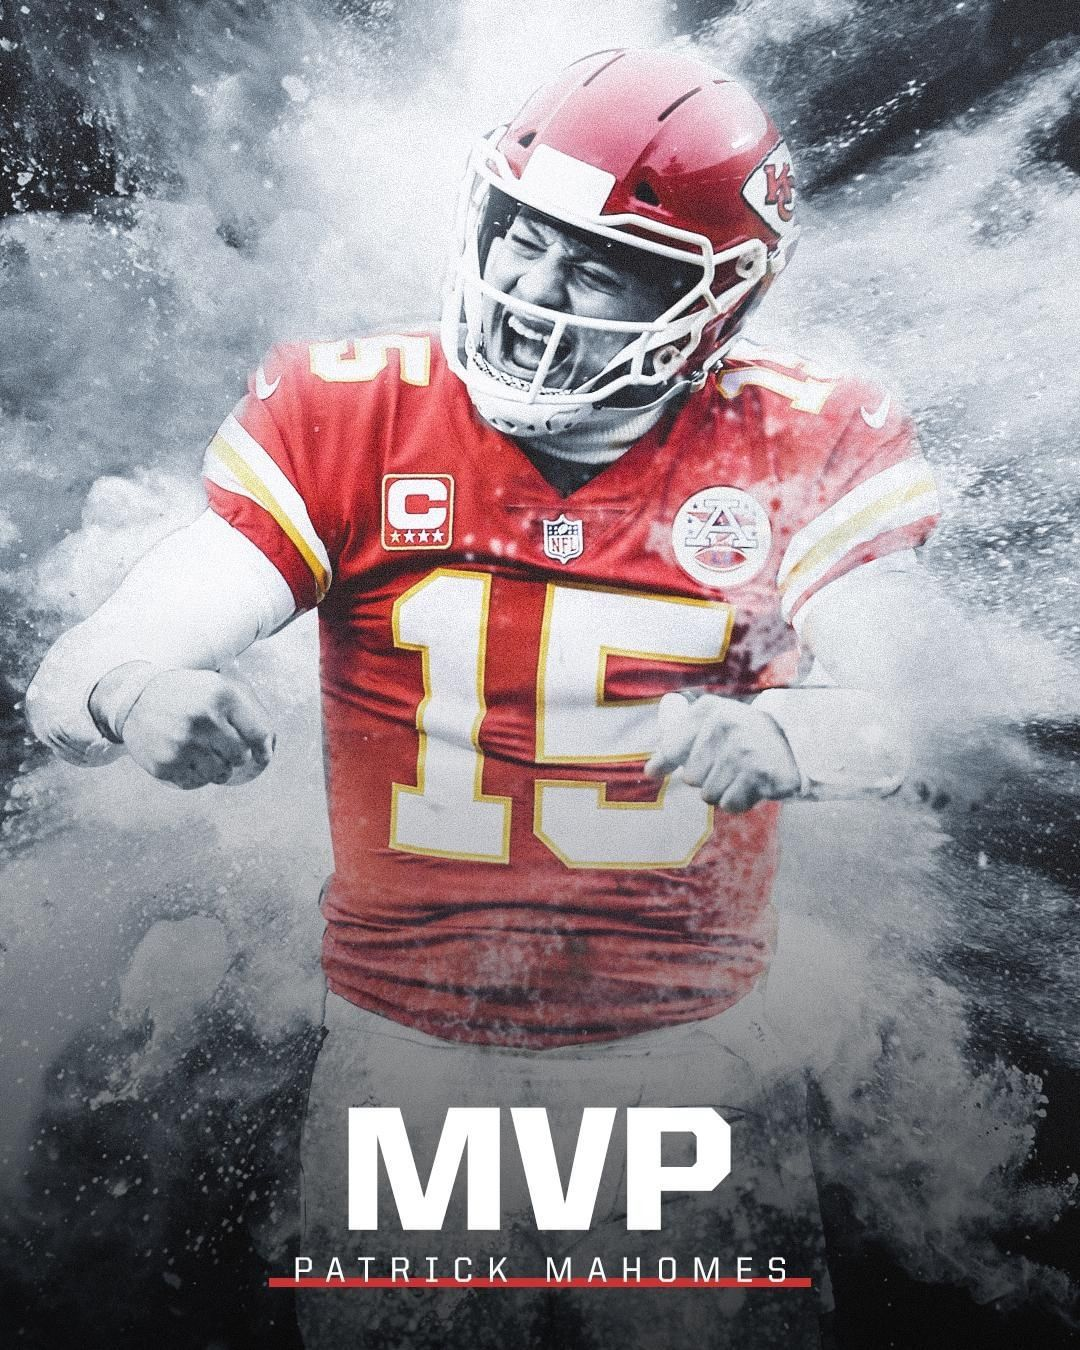 Sportscenter On Instagram Patrick Mahomes Becomes The 1st Chief Ever To Win Nfl Mvp Kansas City Chiefs Logo Kc Chiefs Football Kansas City Chiefs Football